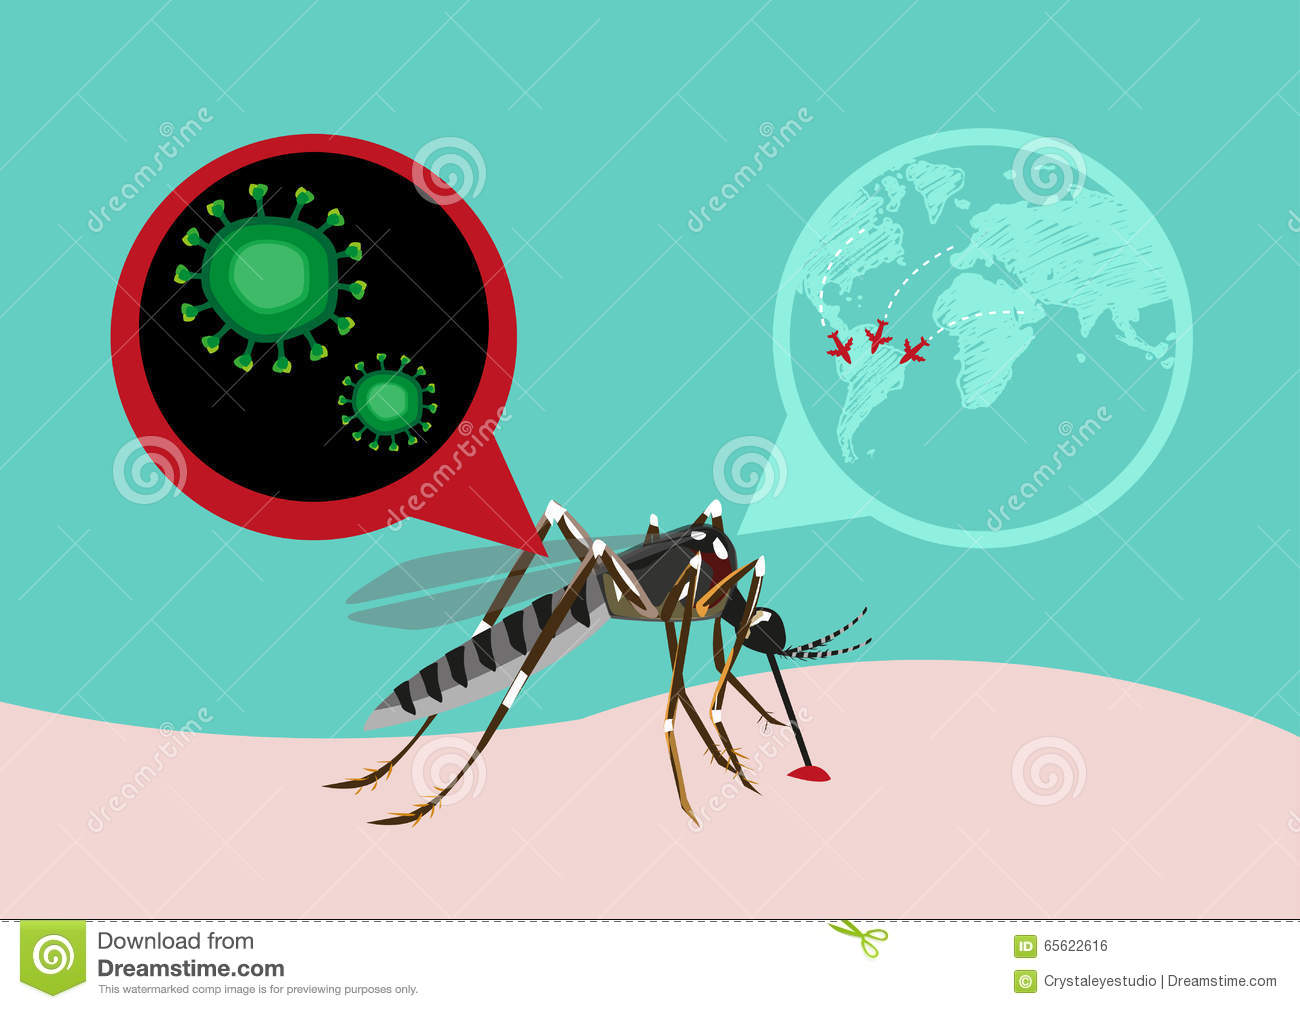 Zika Fever Virus Outbreak And Travel Alert Concept. Editable Clip.